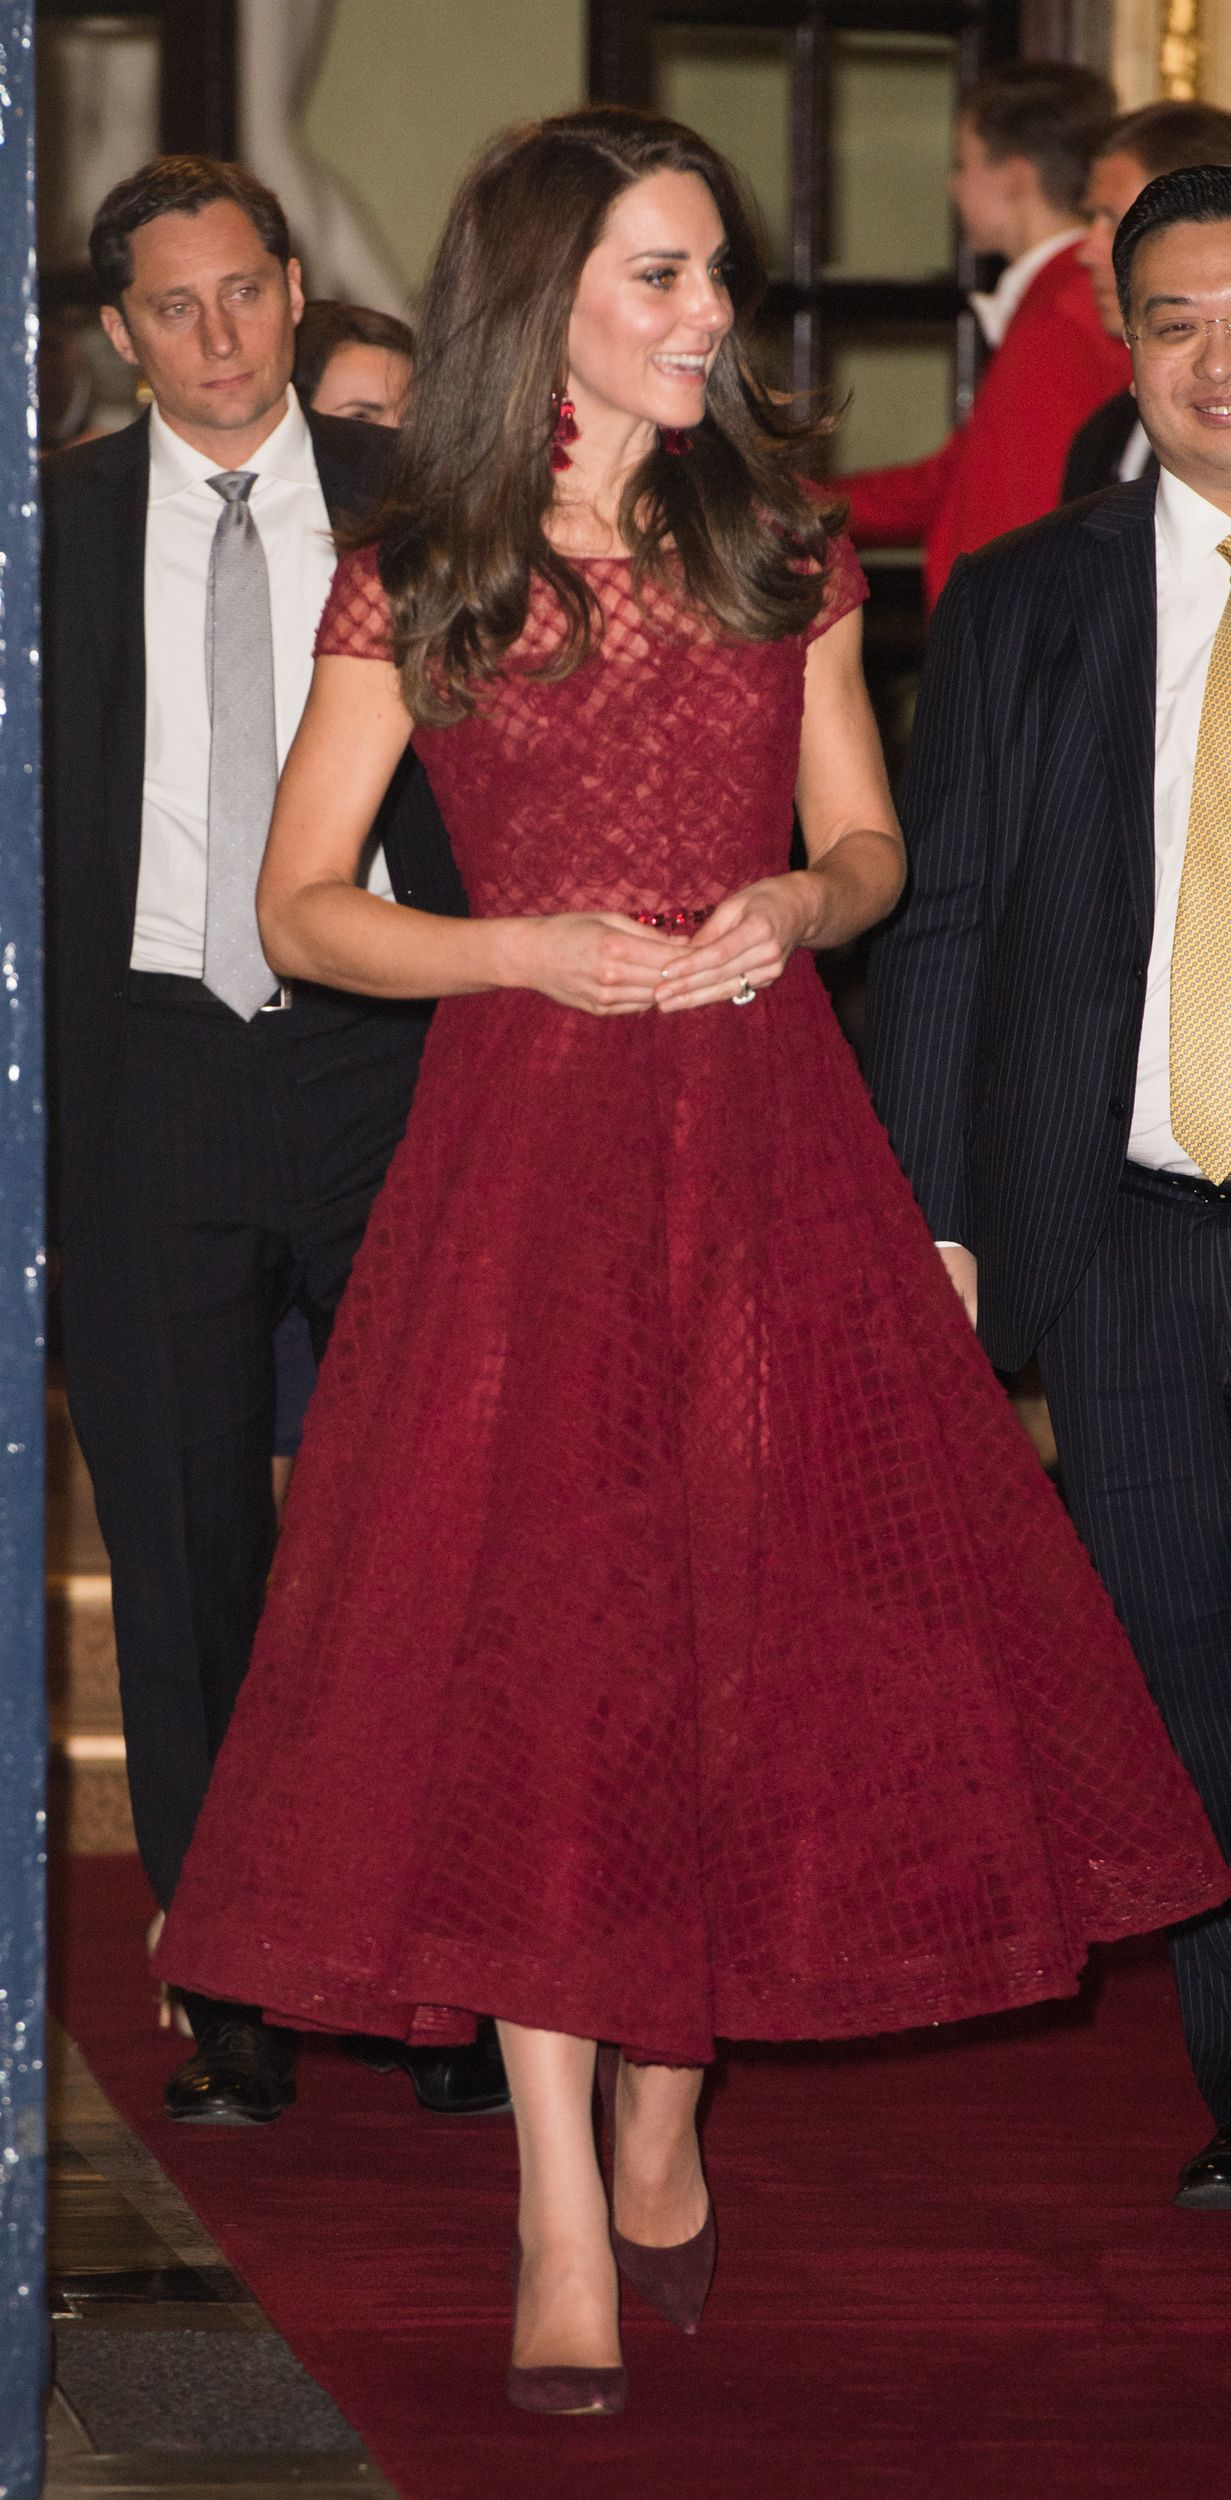 b6e993d5 Catherine, Duchess of Cambridge, wearing a red embellished tulle midi dress  by Marchesa Notte